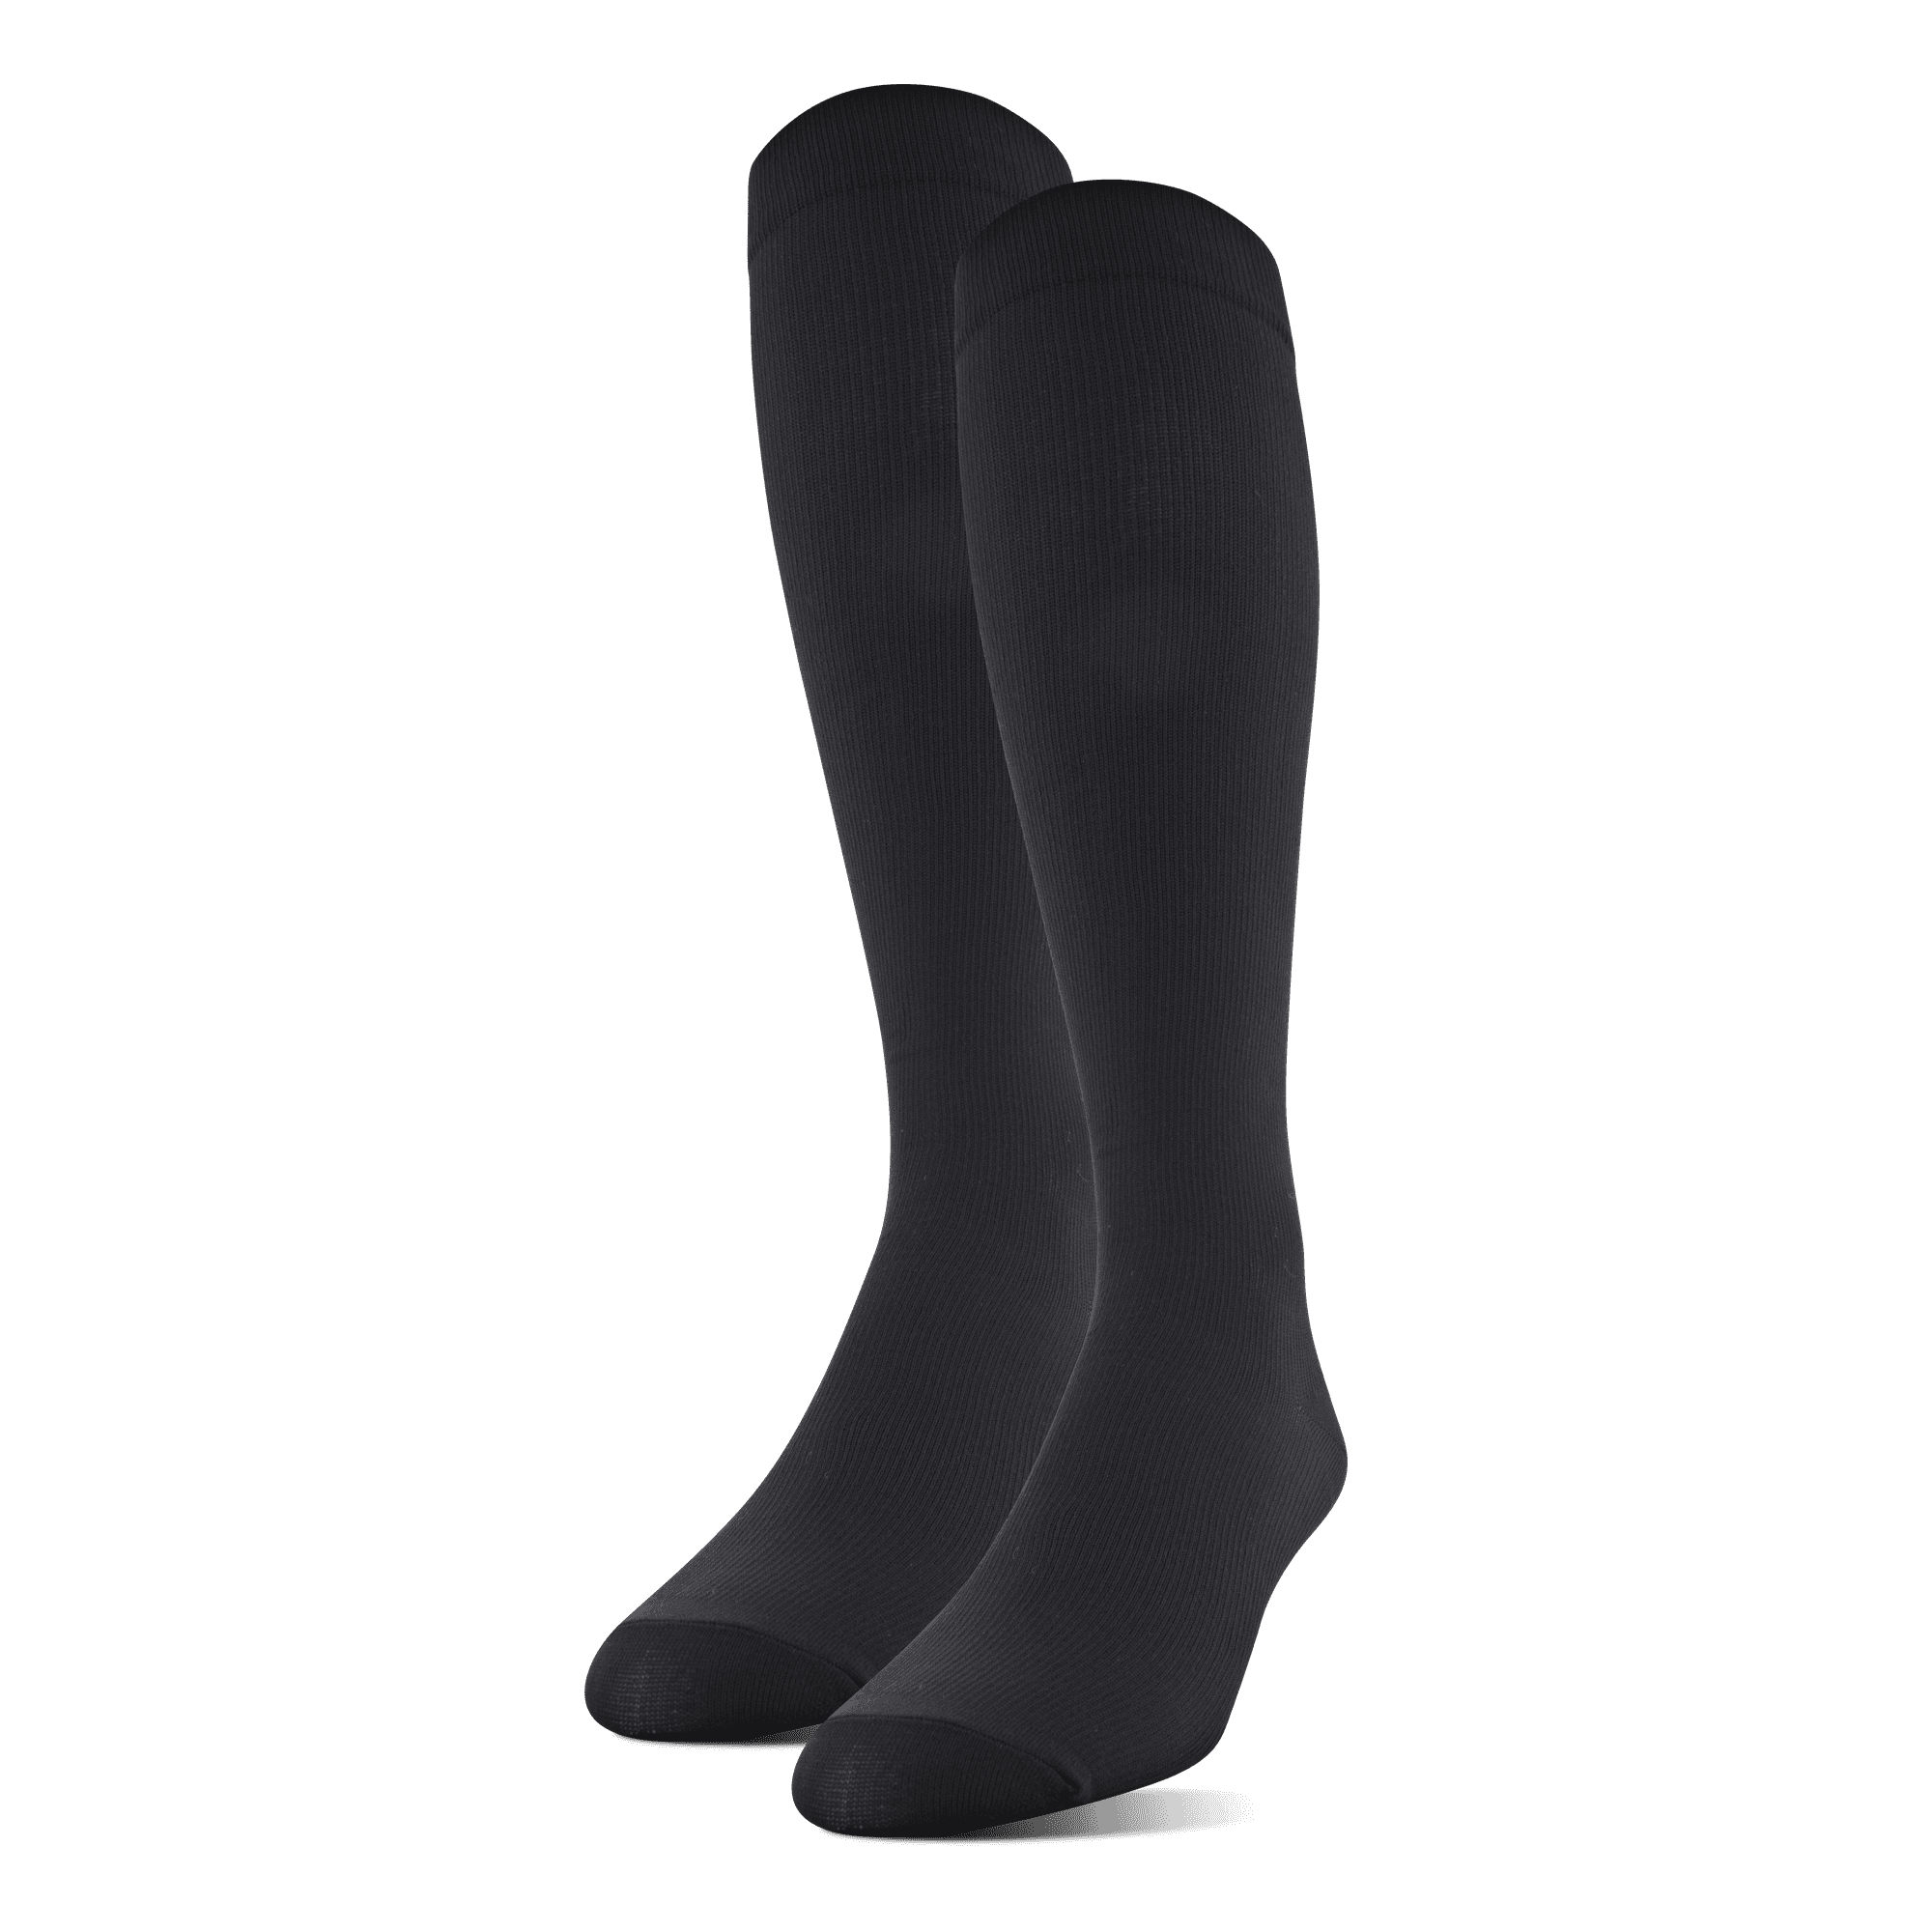 Compression Socks Symbol With Clear Print For Boys Athletes